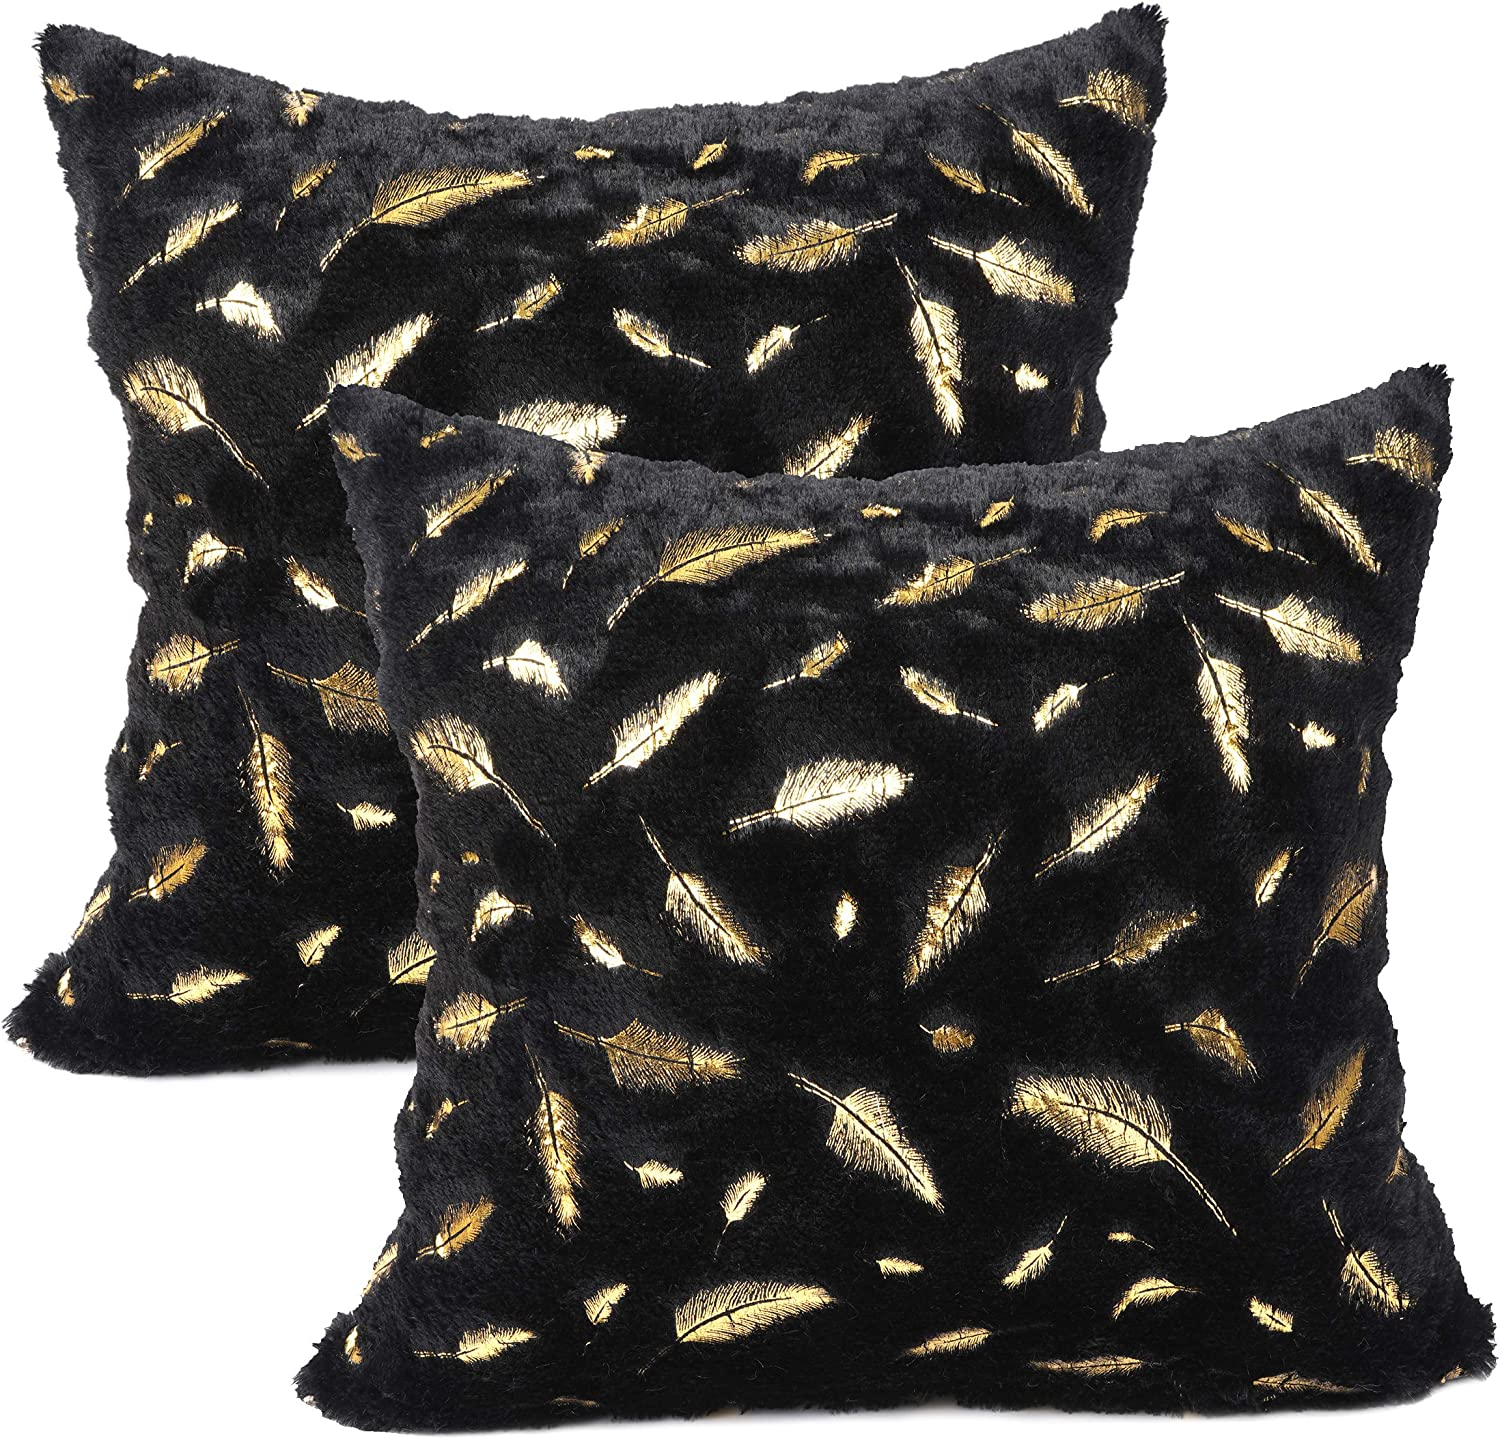 Luxury Large Gold Feather Plush Fur Soft Cushion Cover Pillow Case Home Decor